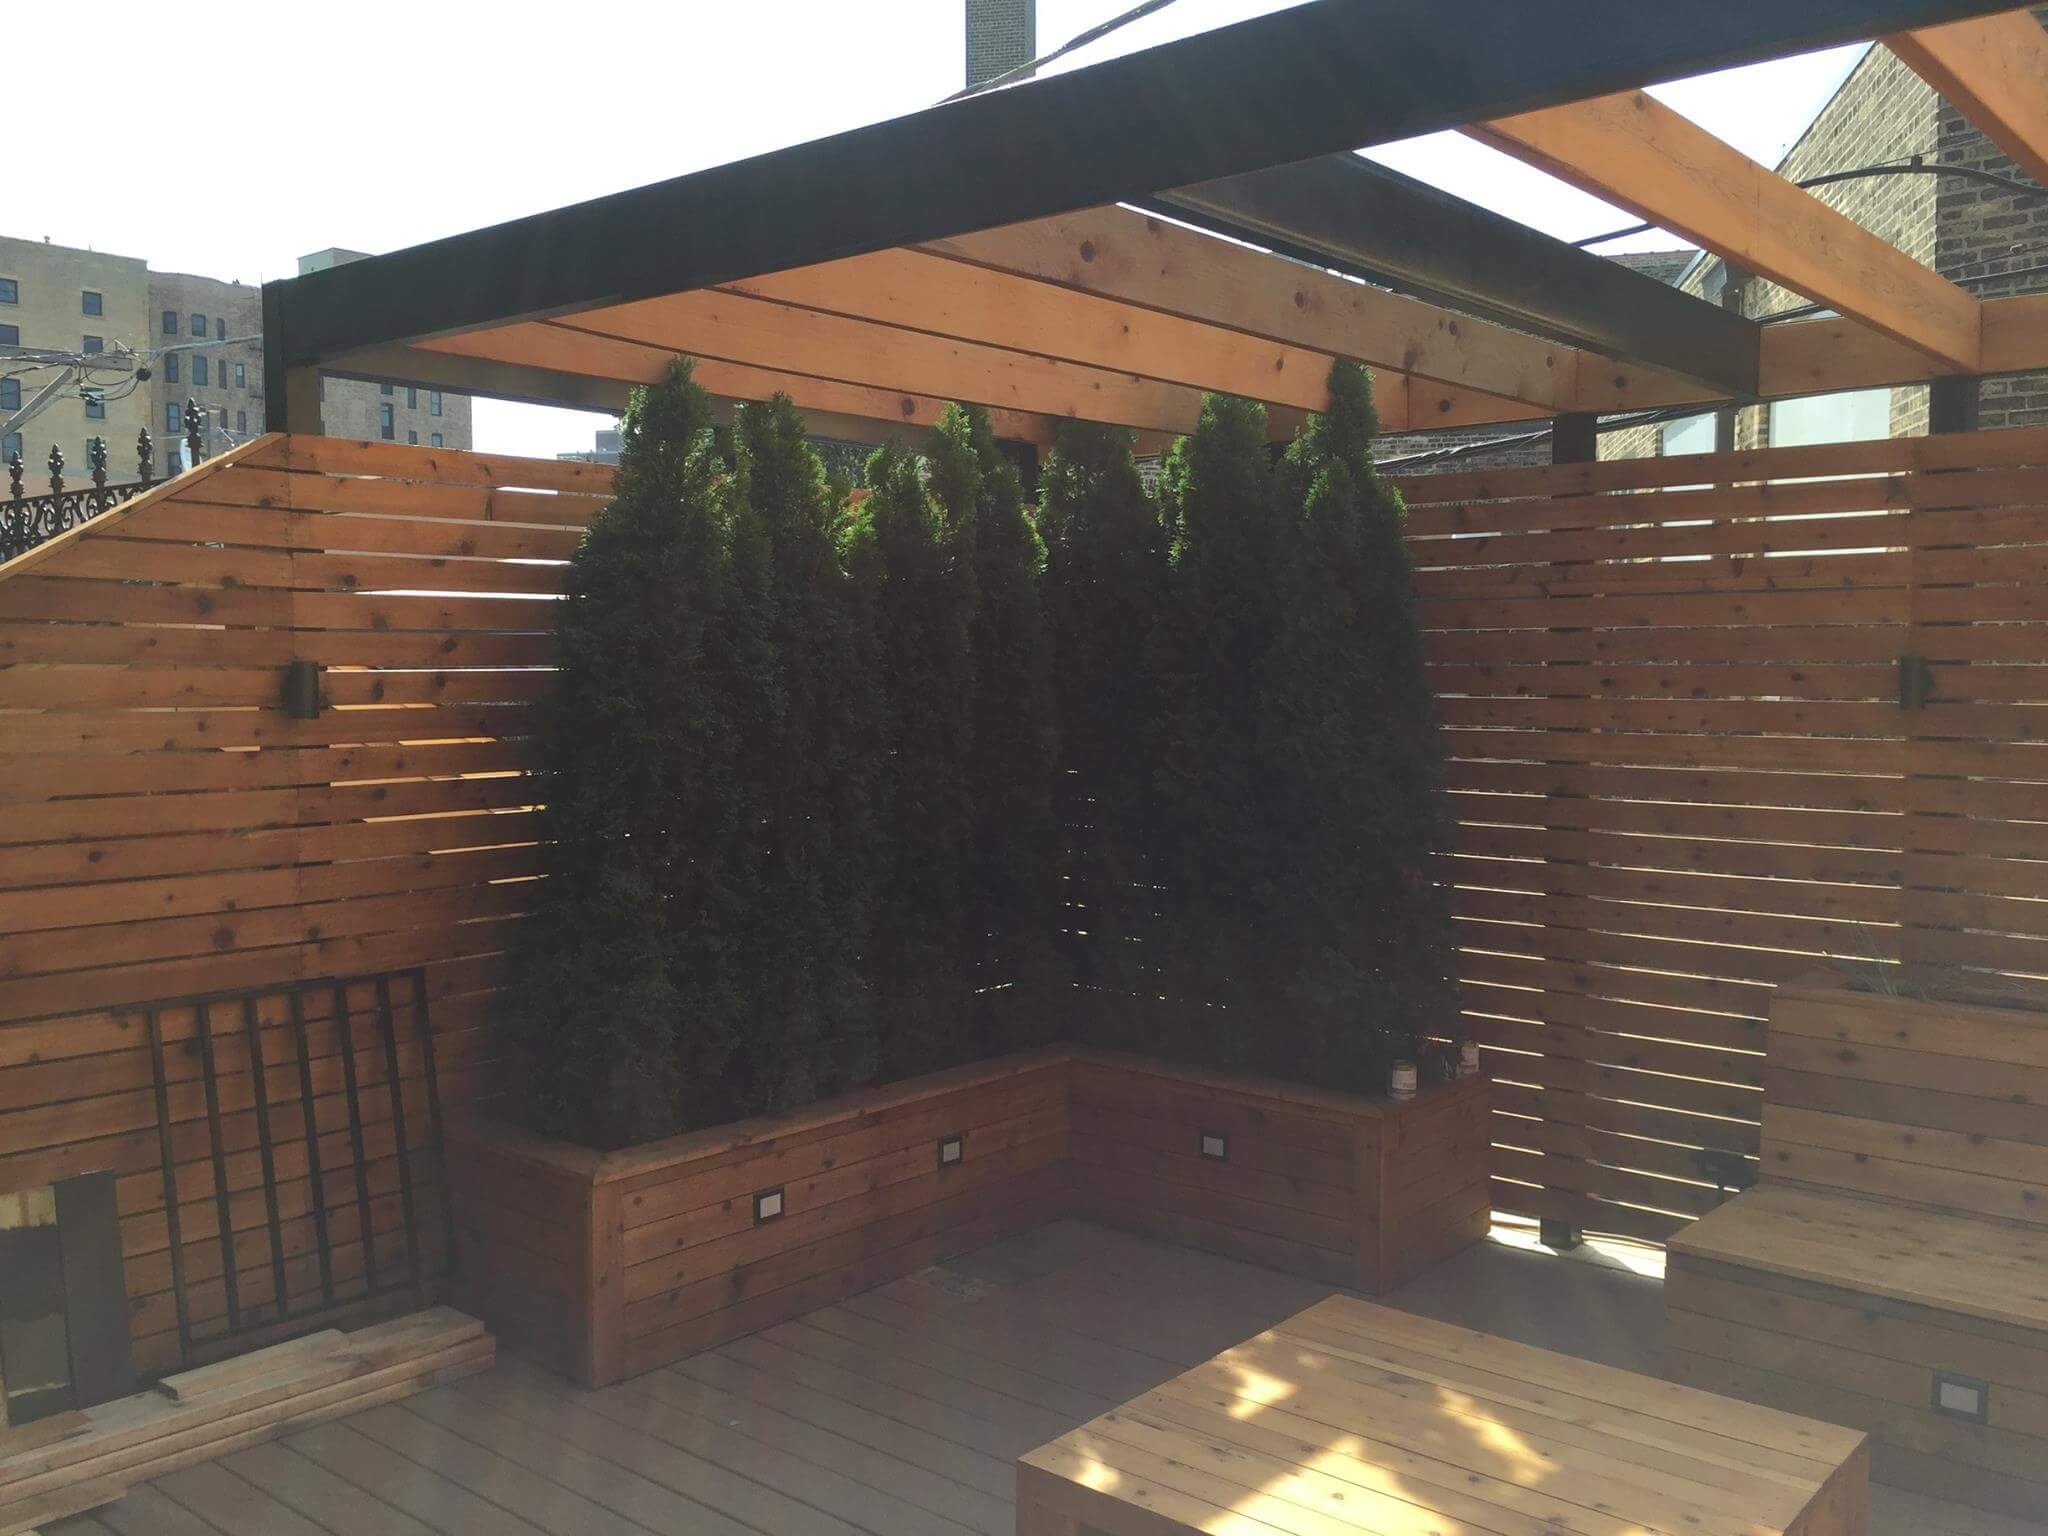 roof deck metal pergola with built in bench seating and planters lakeview chicago